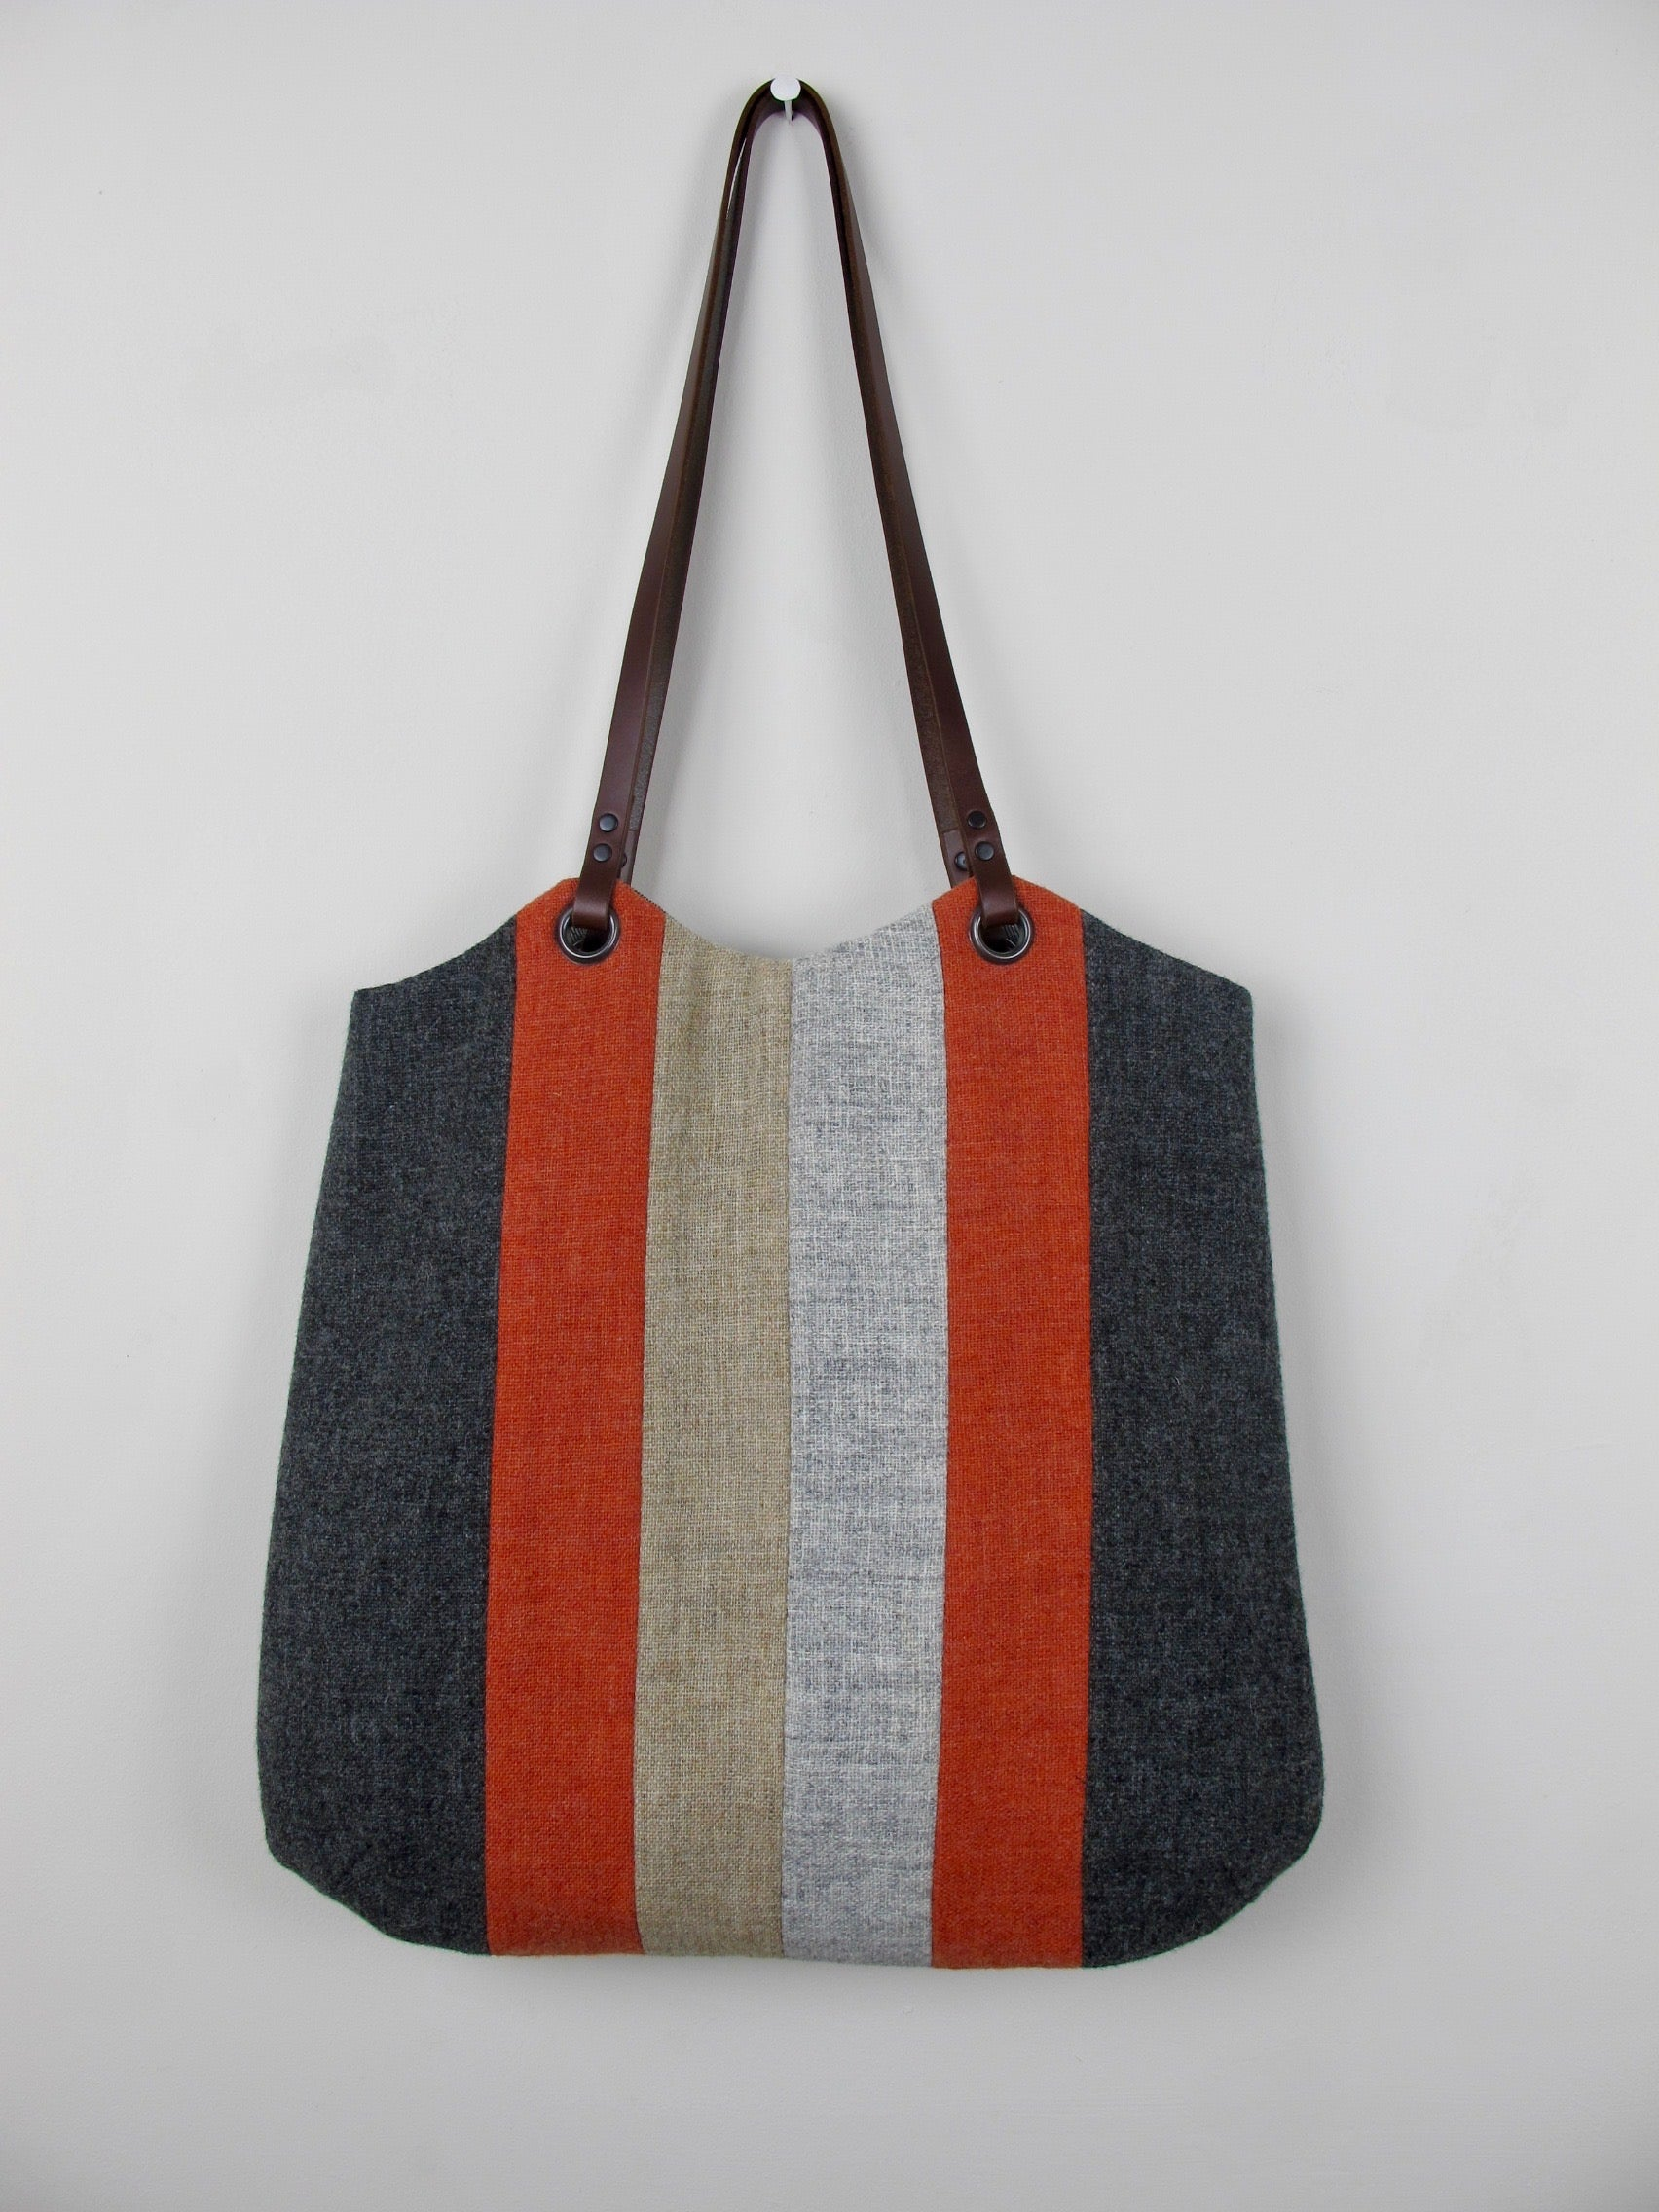 Patchwork Tote Bag - orange, straw, grey stripe I